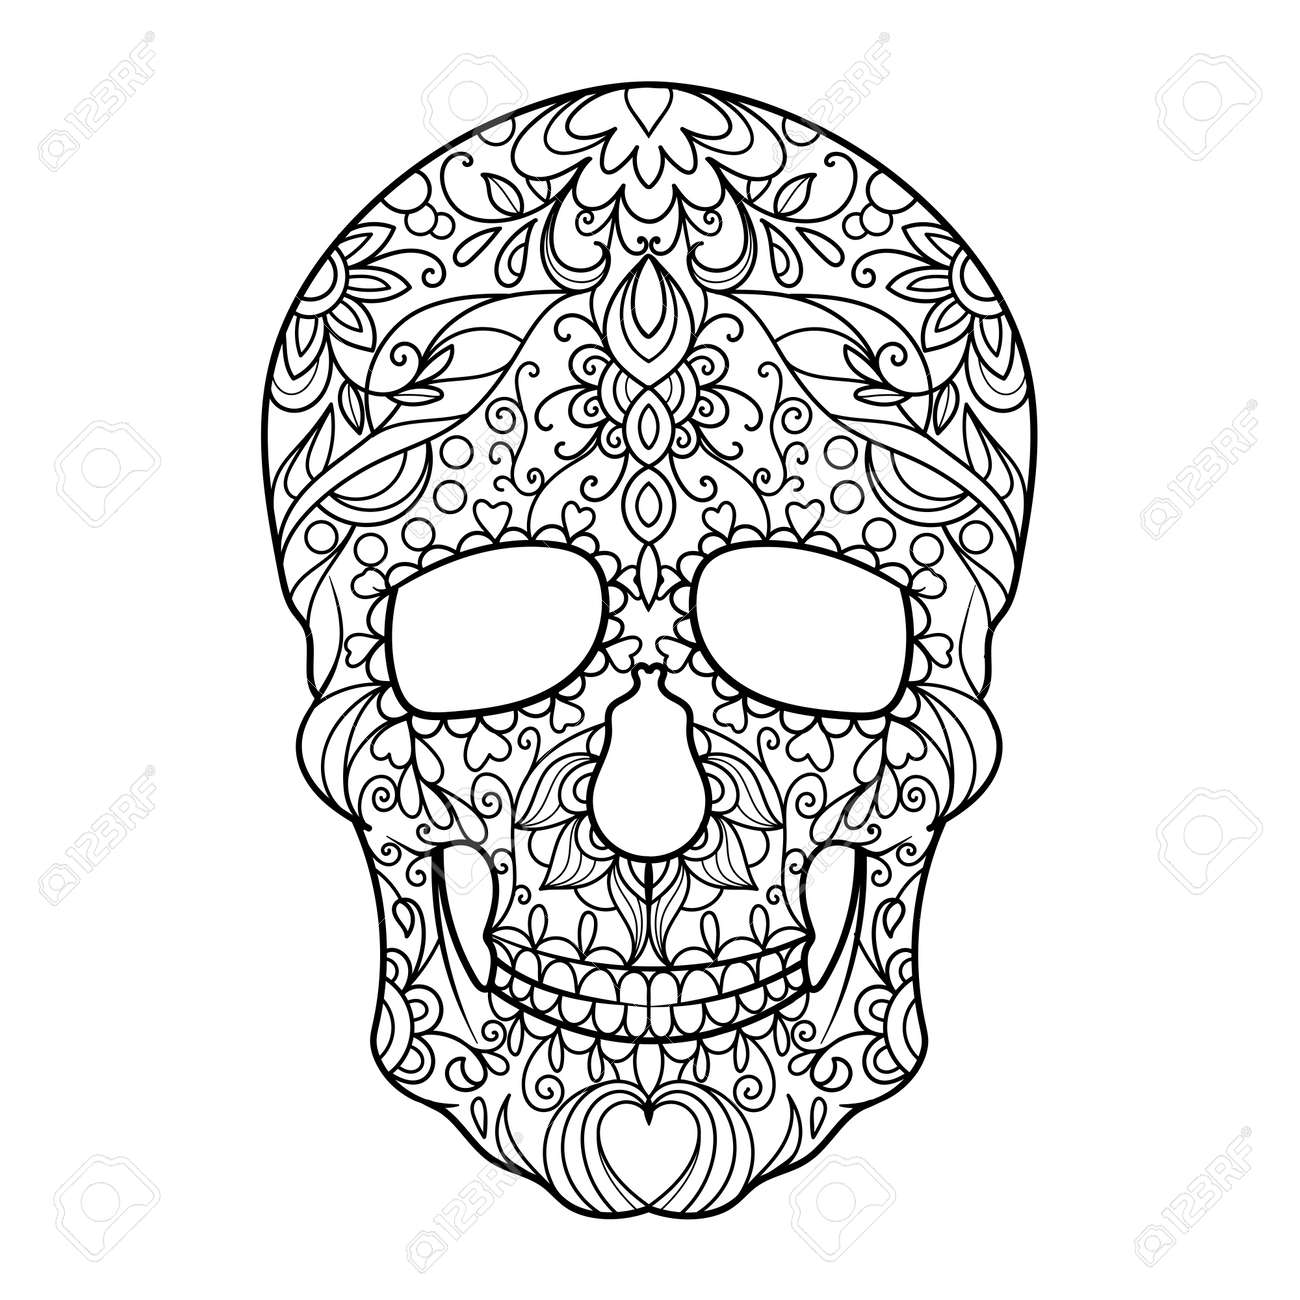 Hunan Skull Coloring Book For Adults Vector Illustration Royalty